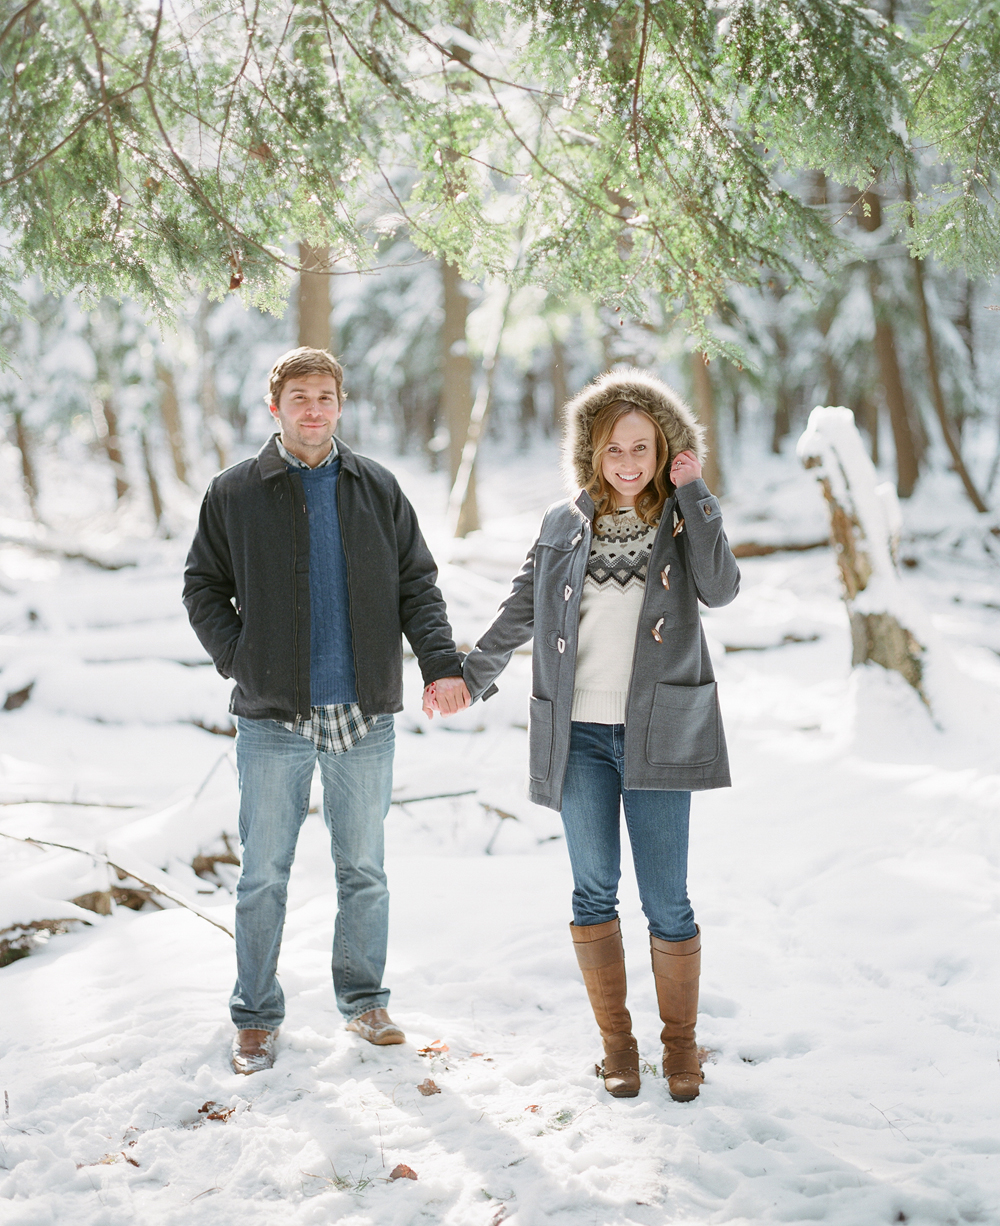 winter-engagement-photos-wausau-003.jpg